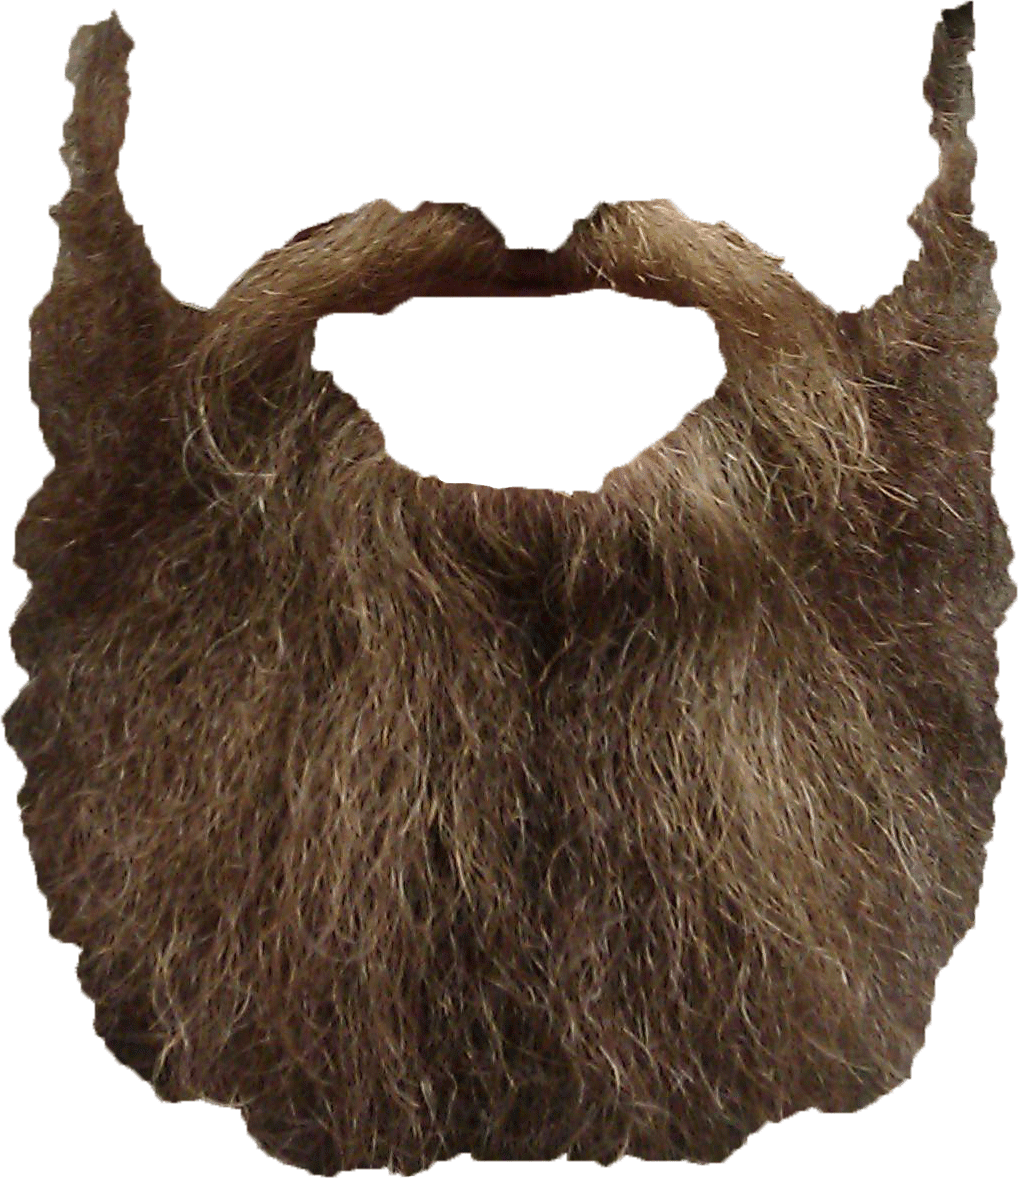 PNG Transparent Beard image #44590